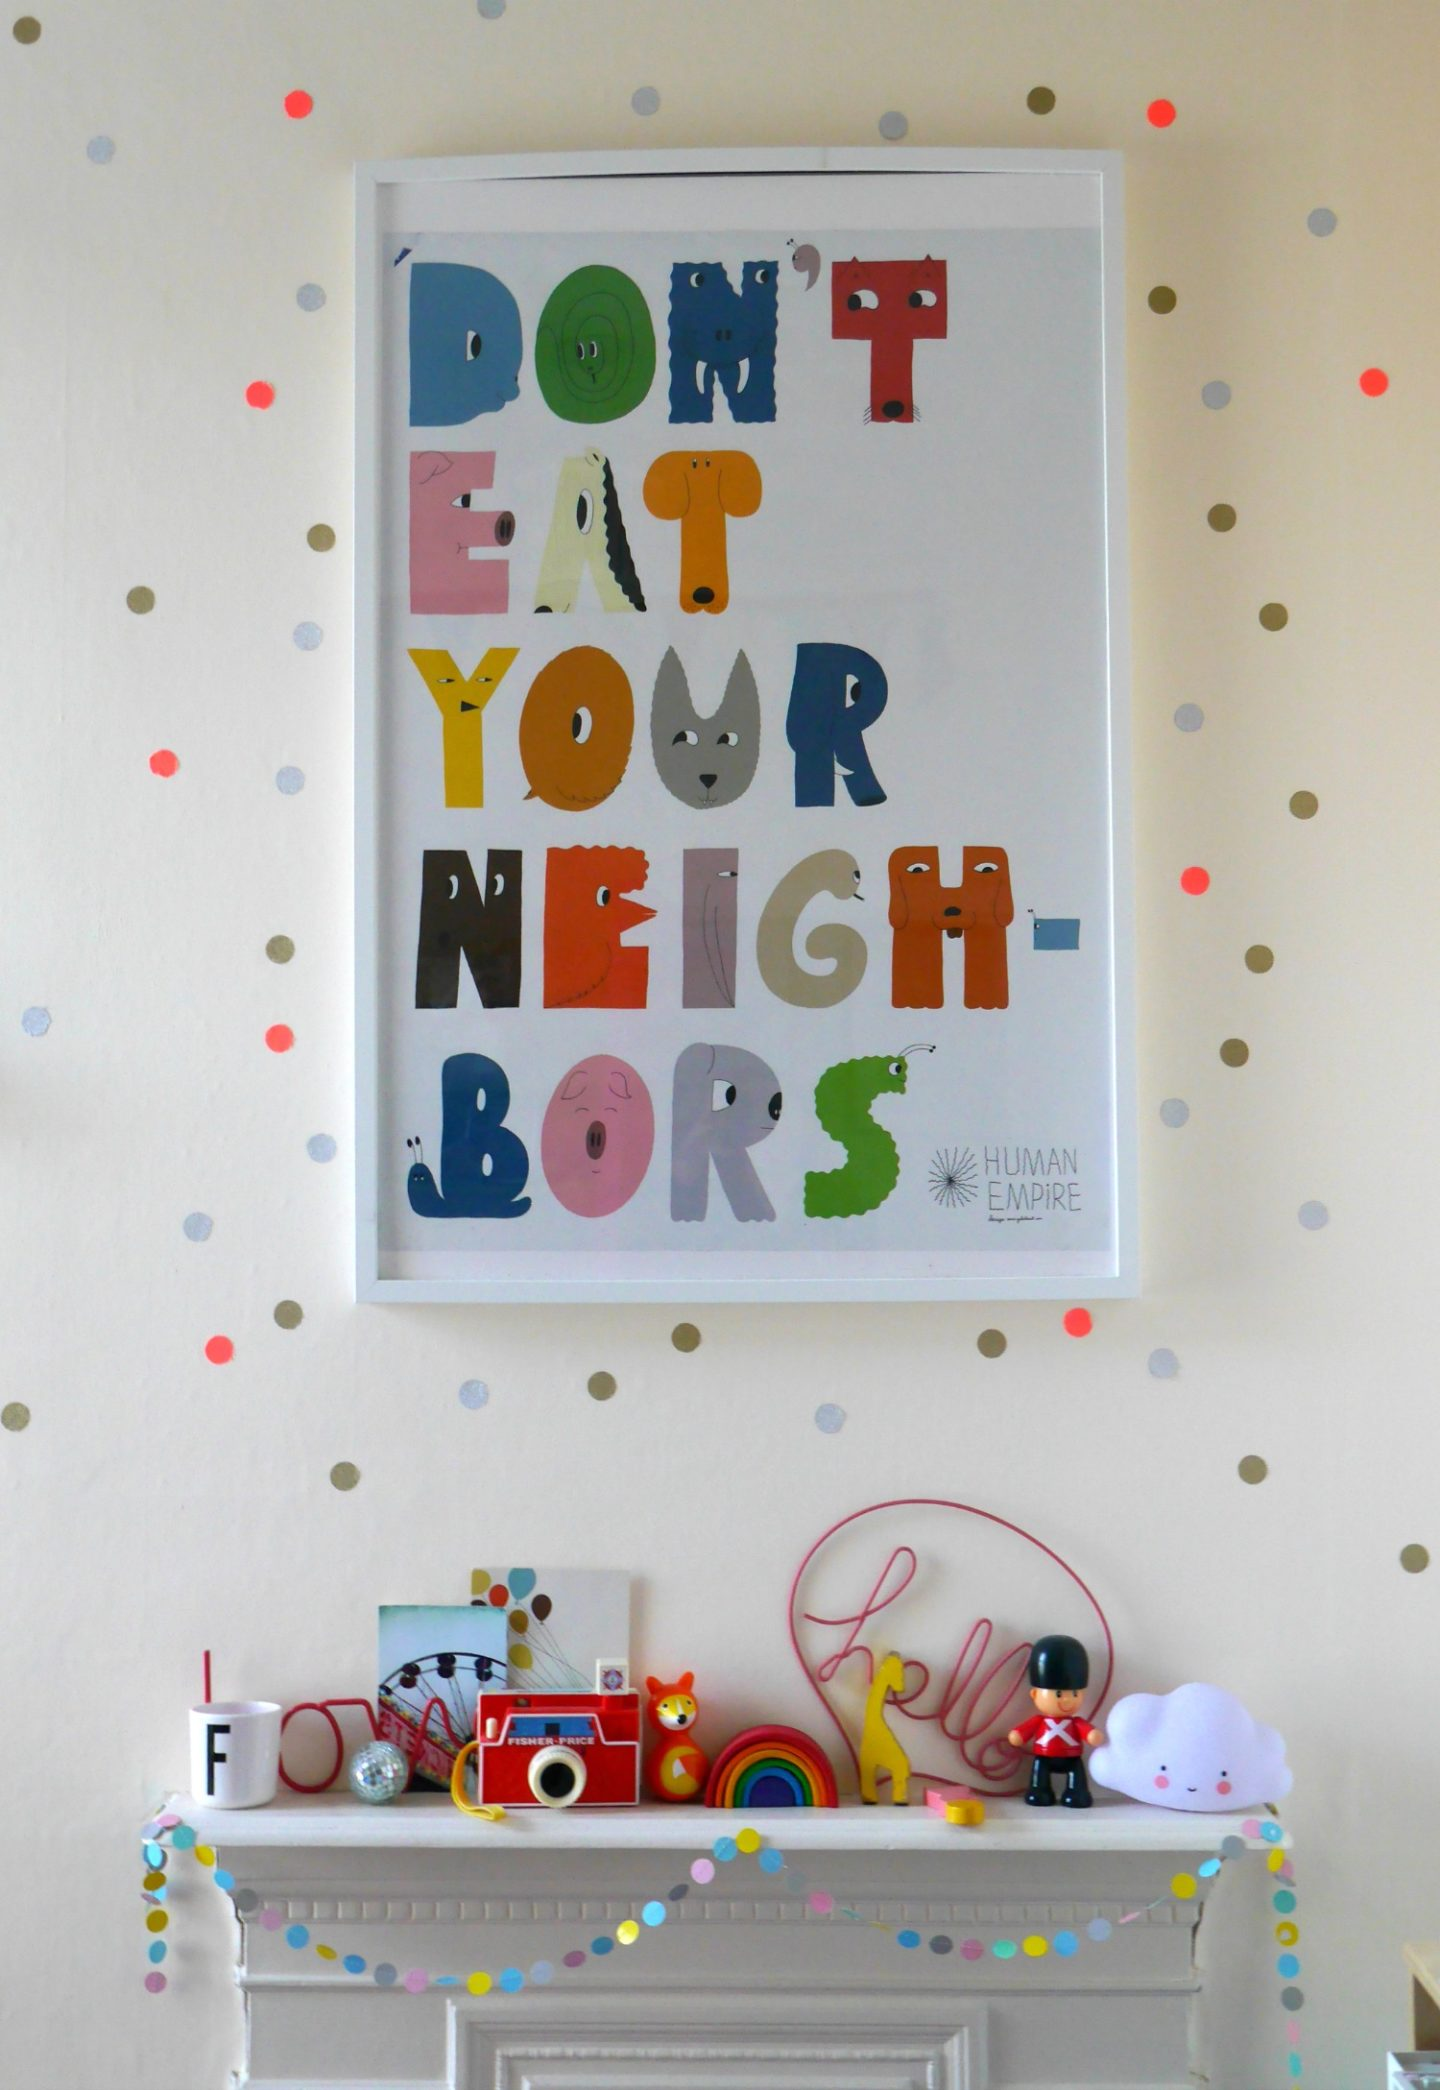 Don't eat youre neighbours poster and DIY wall stickers in a colourful children's bedroom